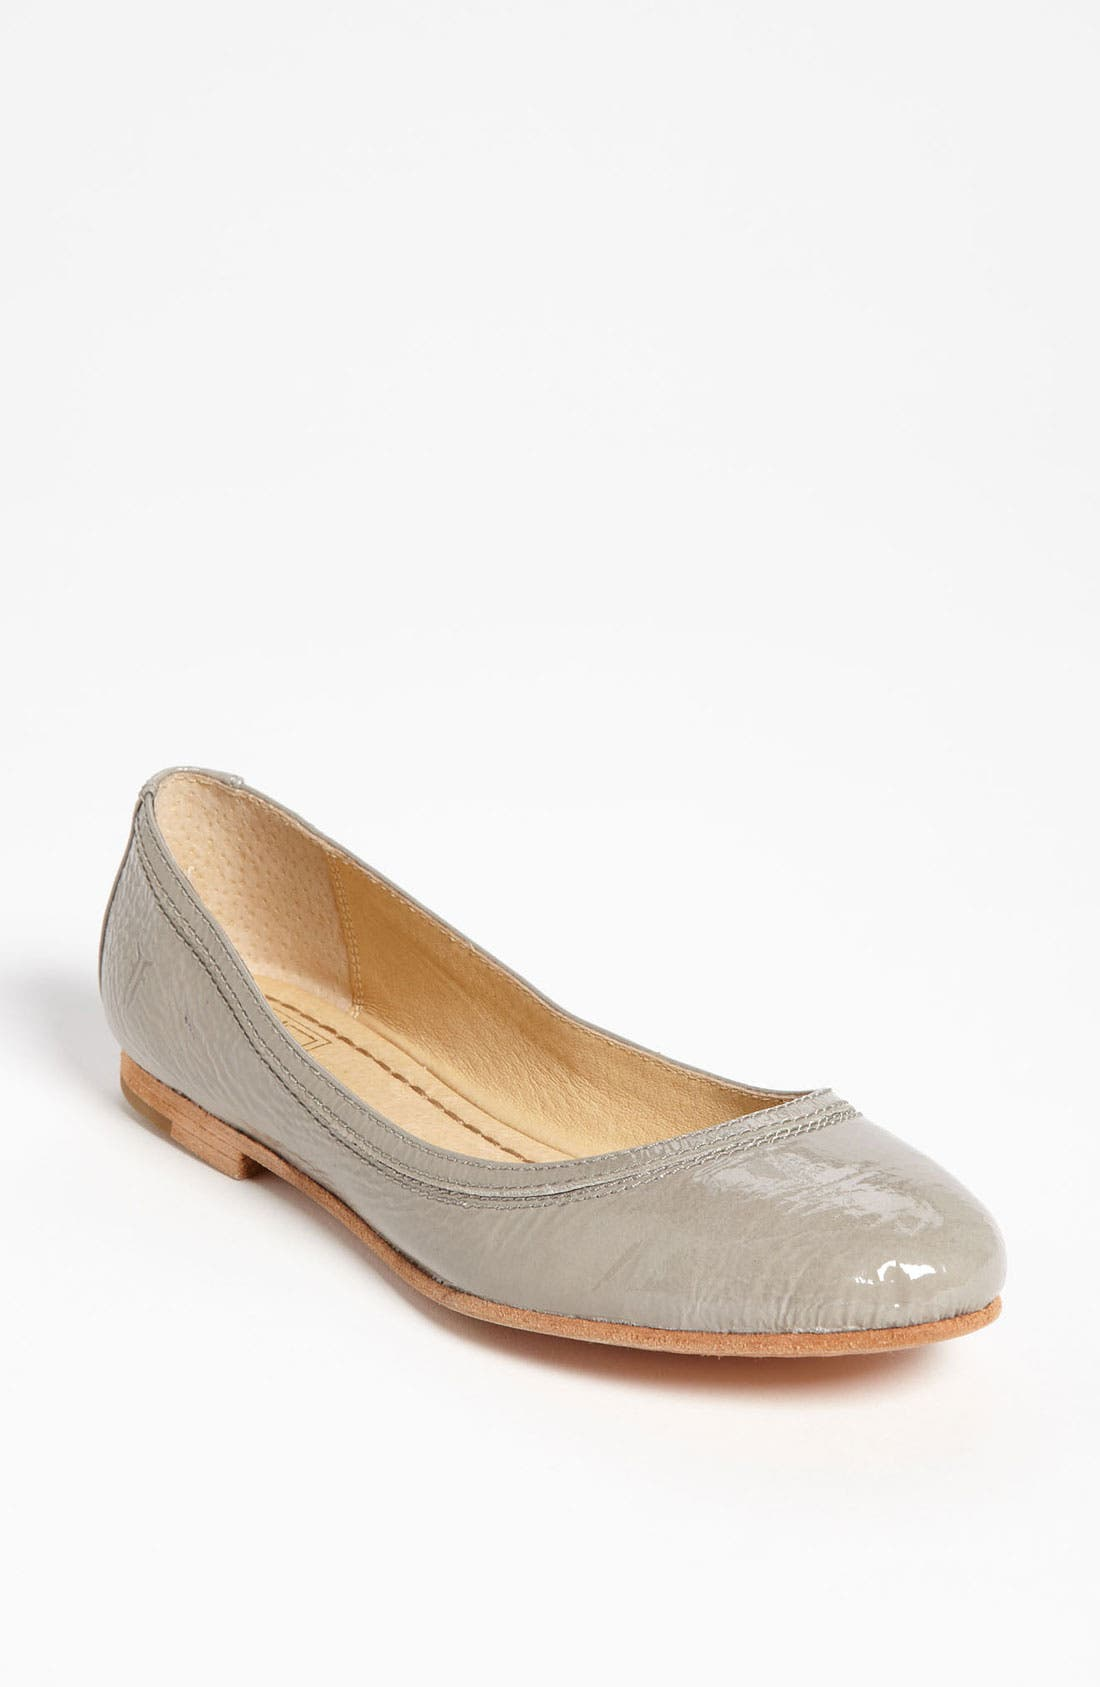 Alternate Image 1 Selected - Frye 'Carson' Ballet Flat